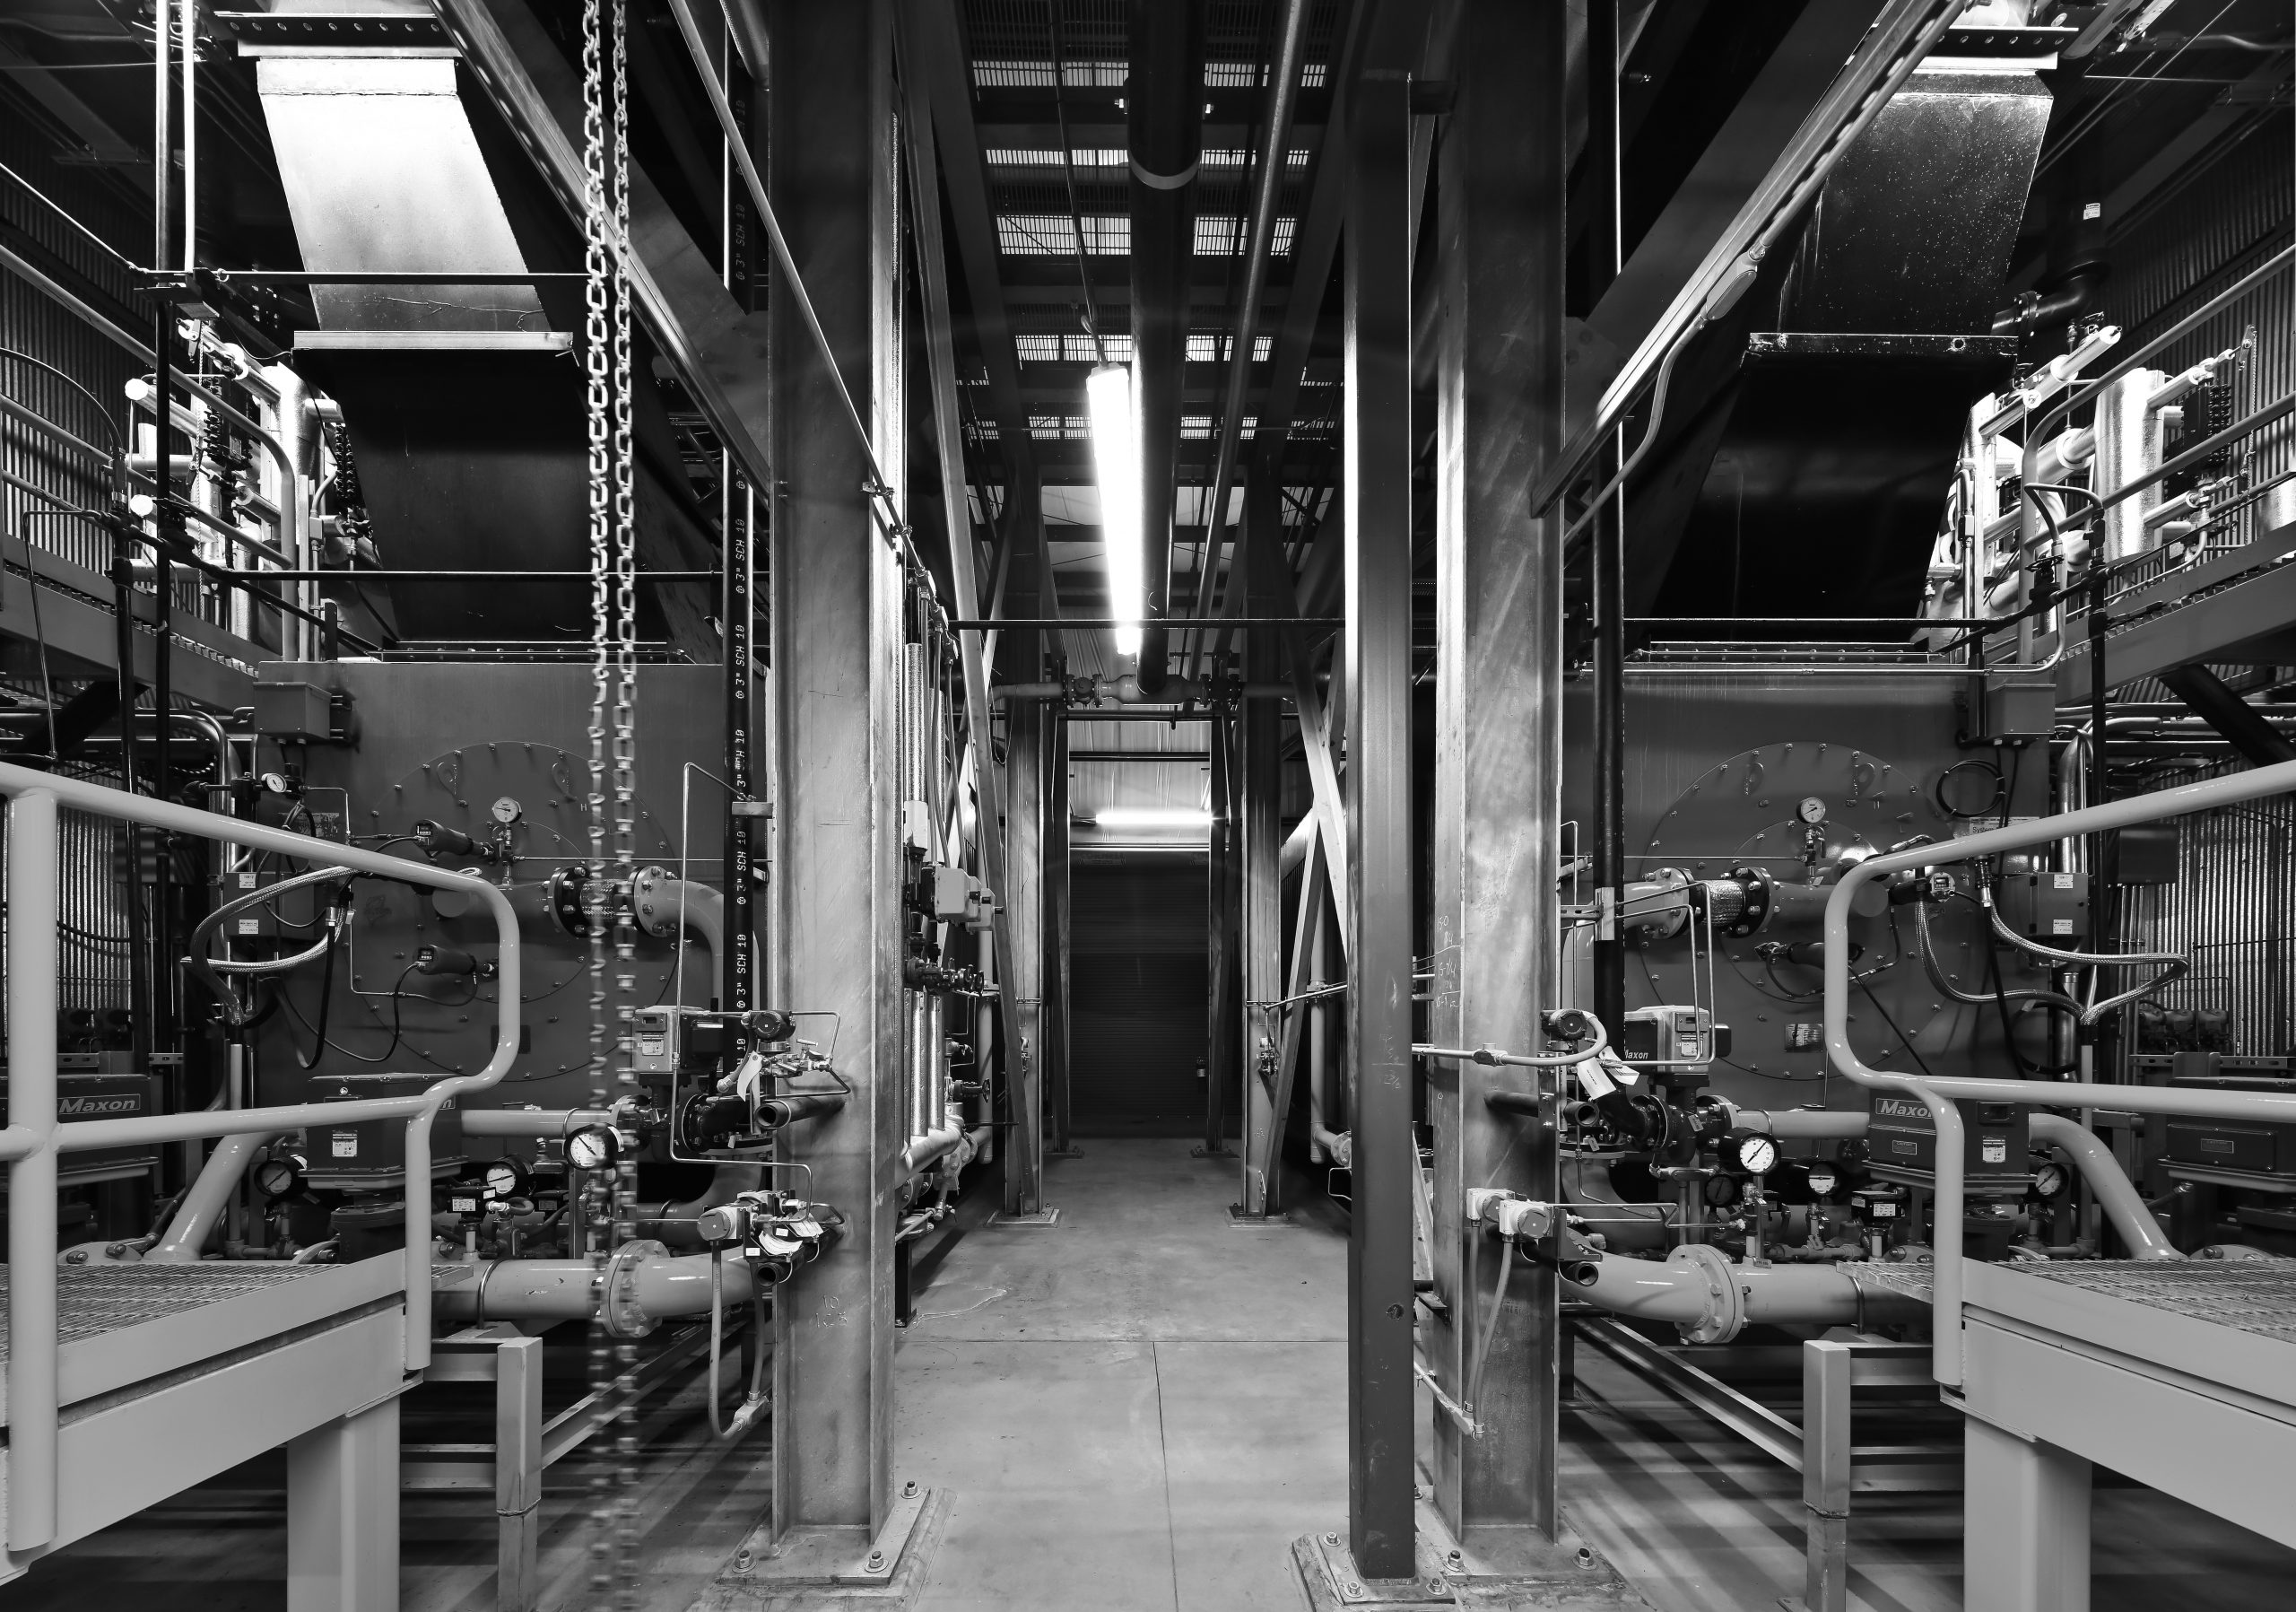 Black and white photo of two boiler units.